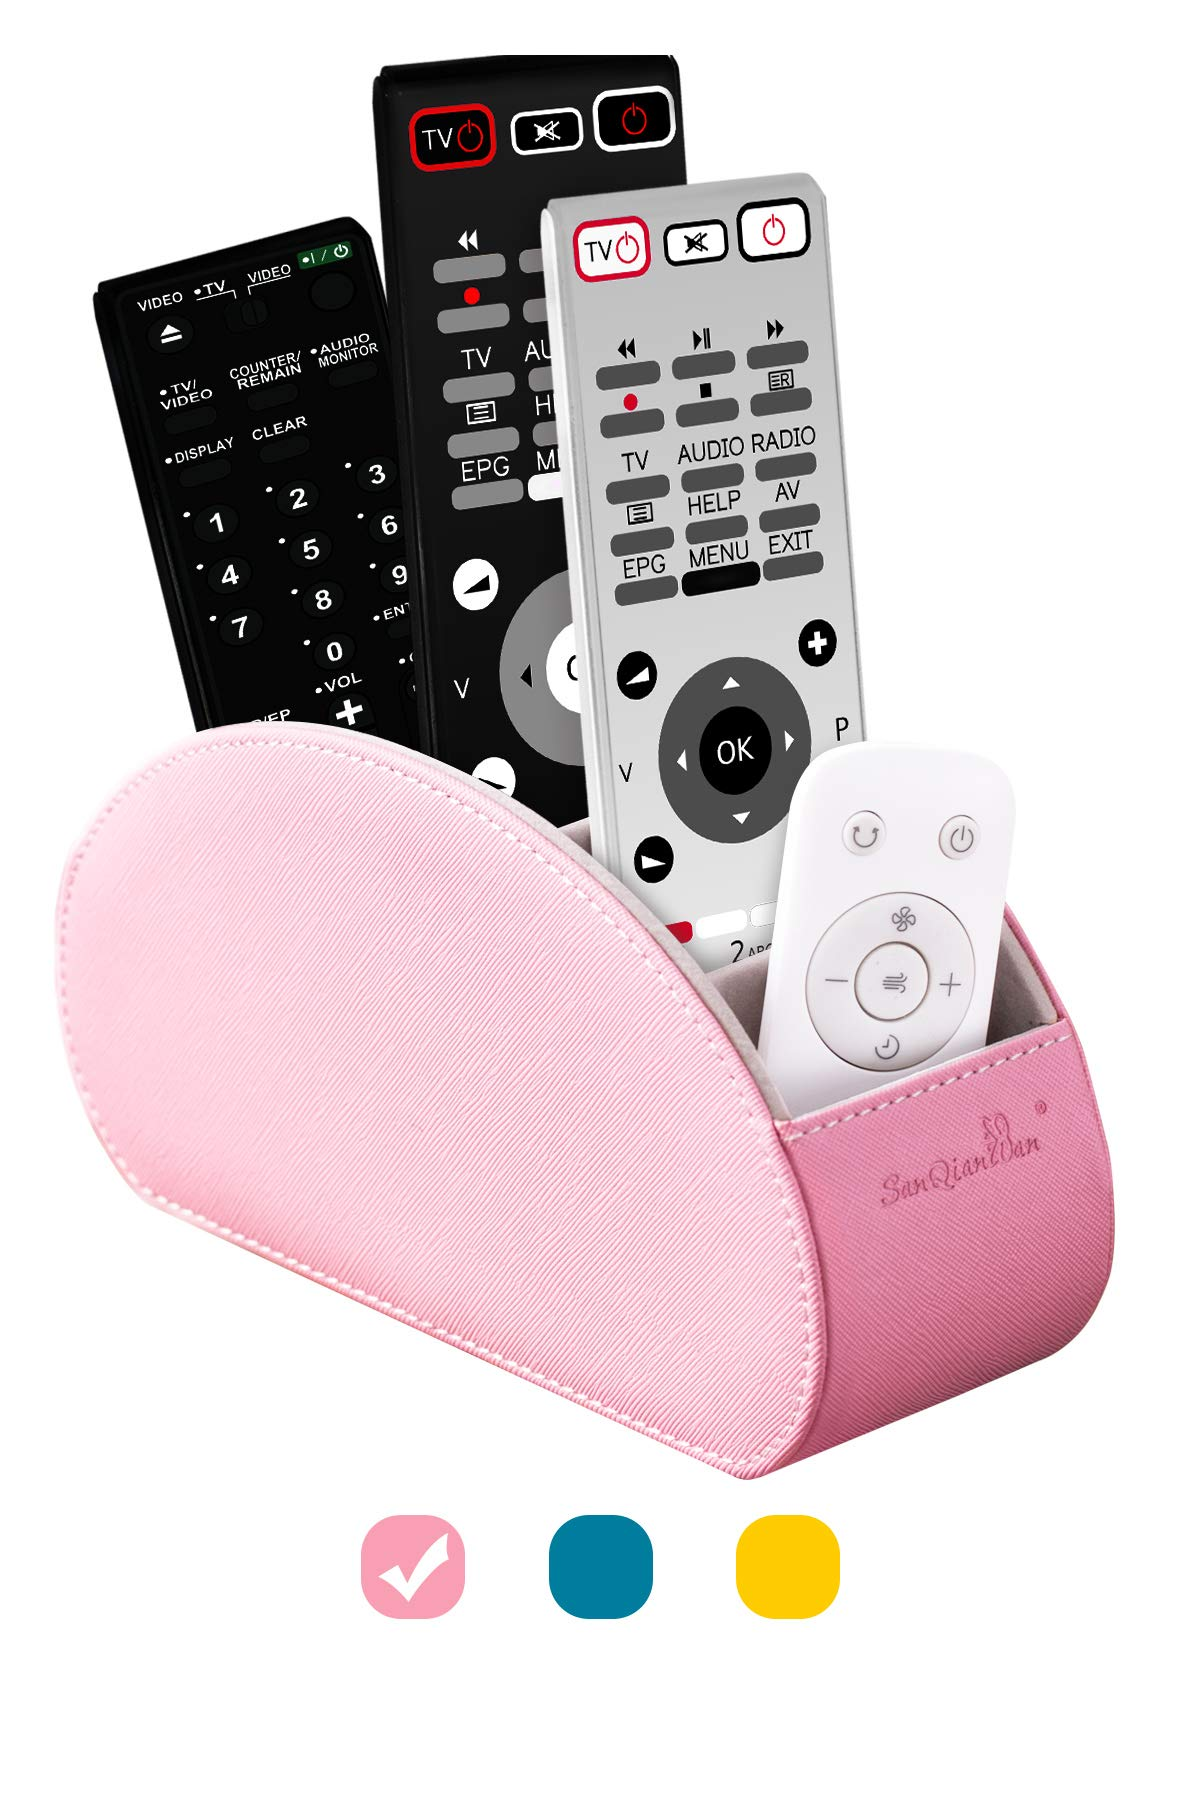 Remote Control Holders Organizer Box, Makeup Brush Holder with Pink PU, Office Organization and Storage Caddy Store Tv Remote Holders,Brush,Pencil,Glasses and Media Player (Pink)